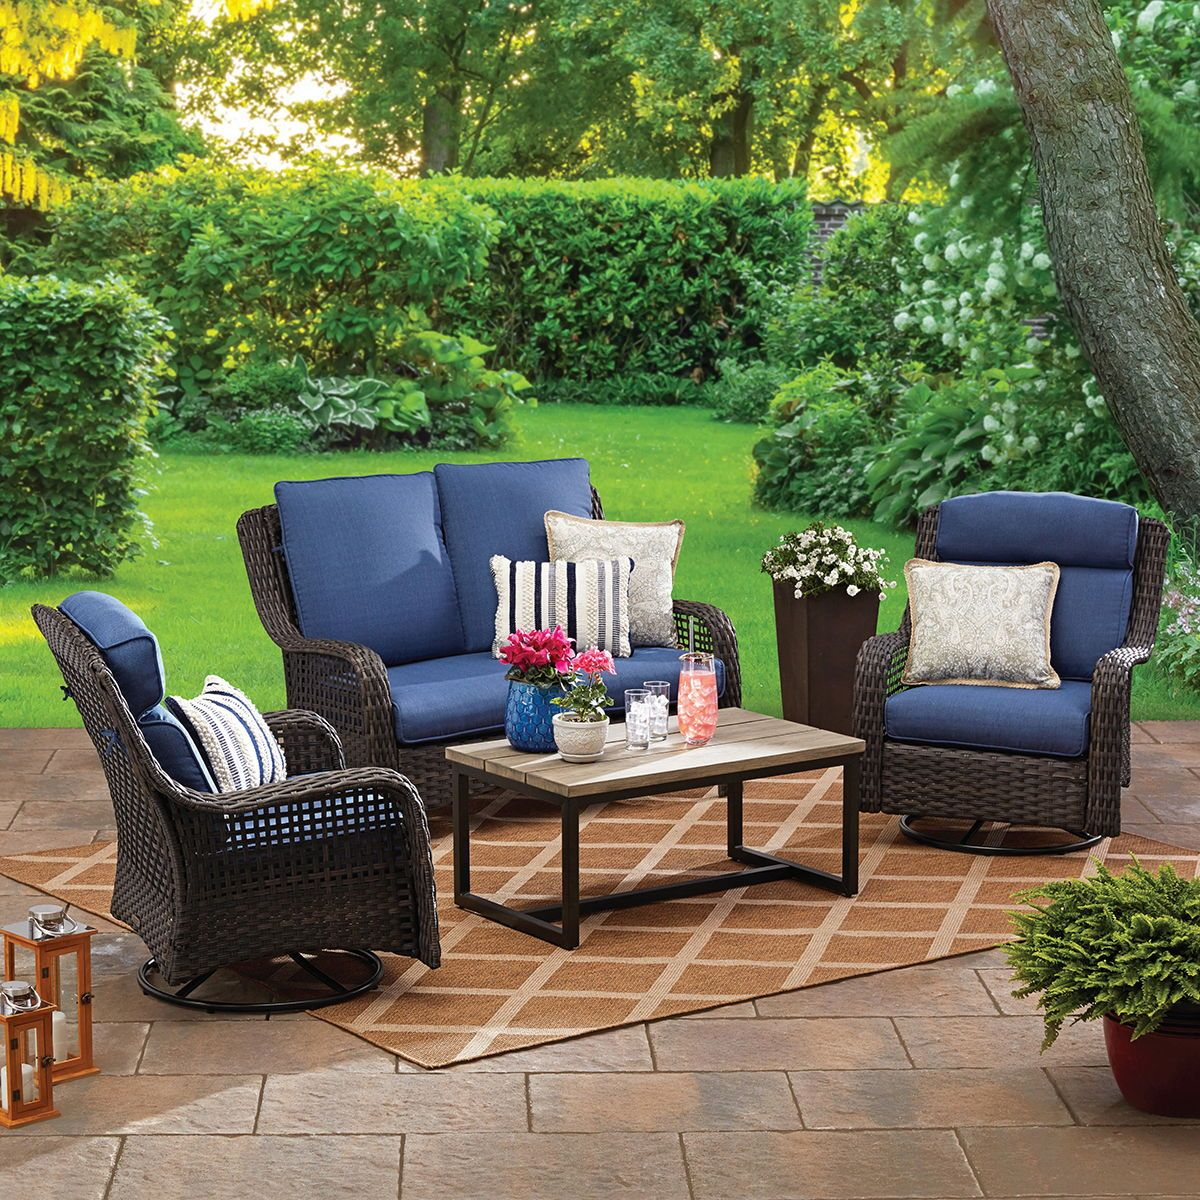 Better Homes Gardens Ravenbrooke 4 Piece Patio Furniture Conversation Set Wicker With Swivel Chairs Walmart Com Backyard Furniture Patio Furniture Conversation Sets Conversation Set Patio